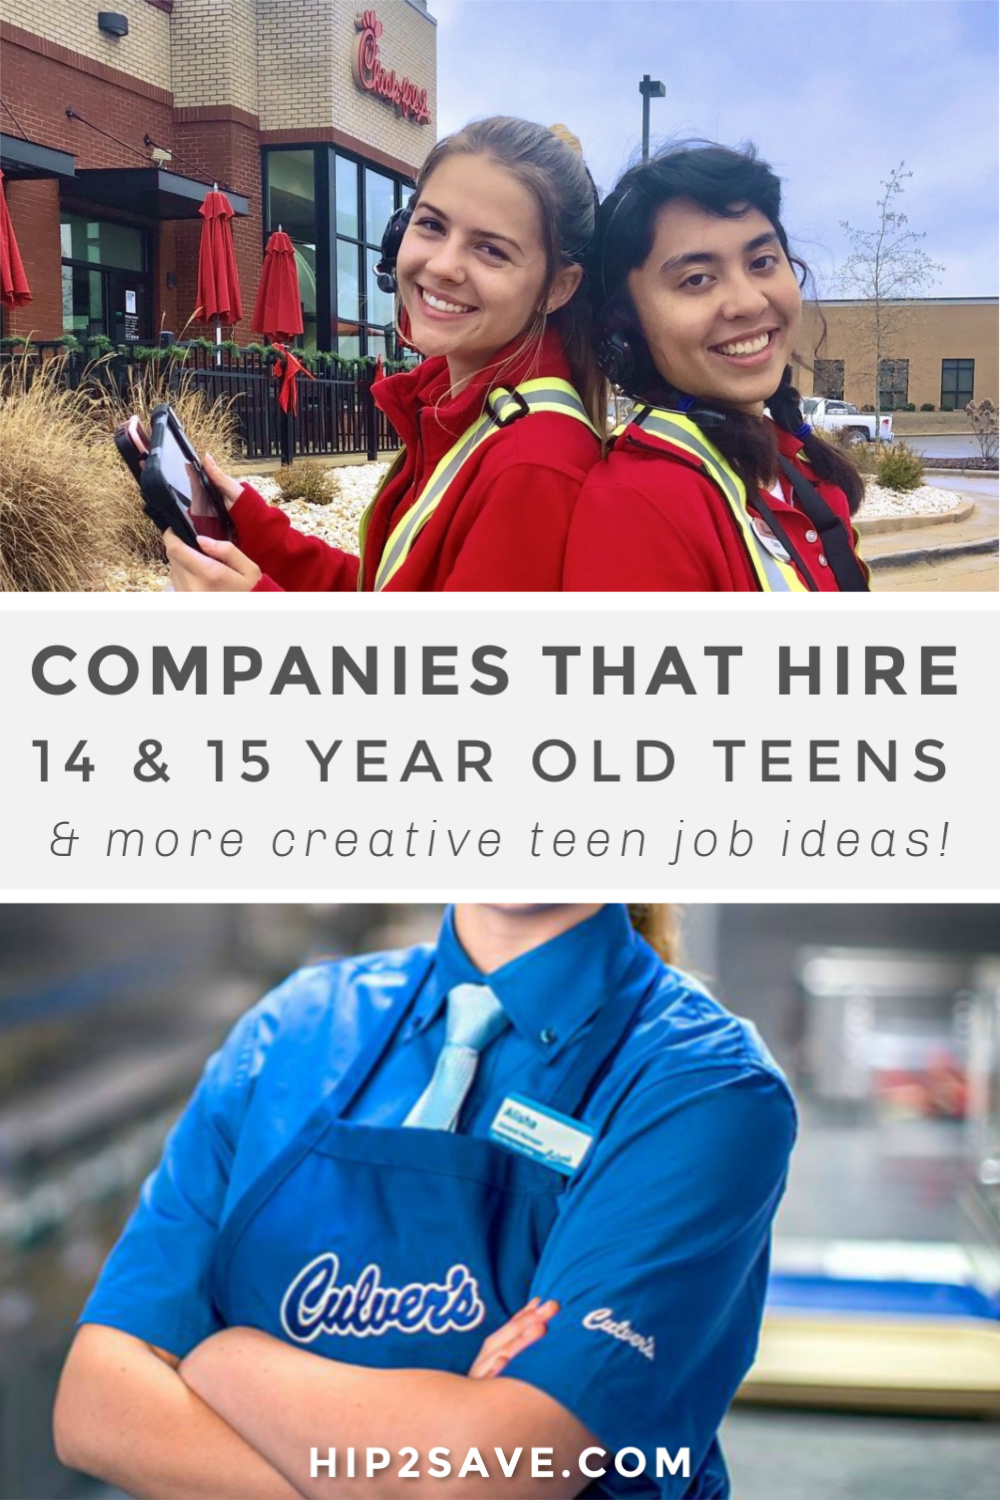 Hey Parents These Jobs Hire Your 14 15 Year Old Teens Hip2save